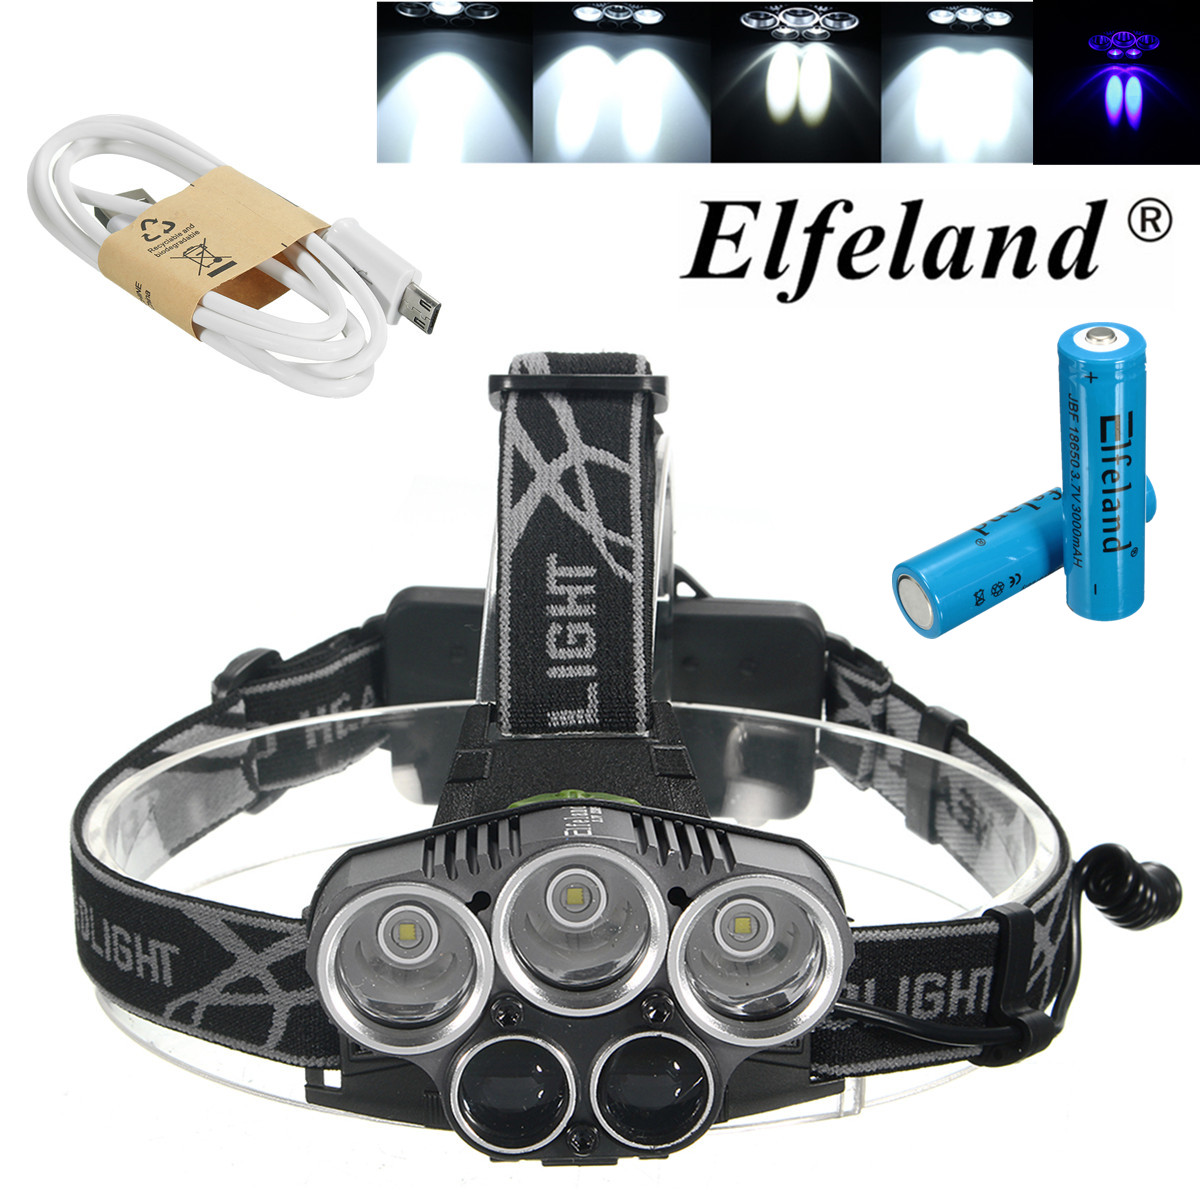 Elfeland T6 LED Rechargeable Headlamp Headlight Flashlight Torch Waterproof 6 Modes with Rechargeable Batteries Night Light and USB Cable For Hiking Camping Riding Fishing